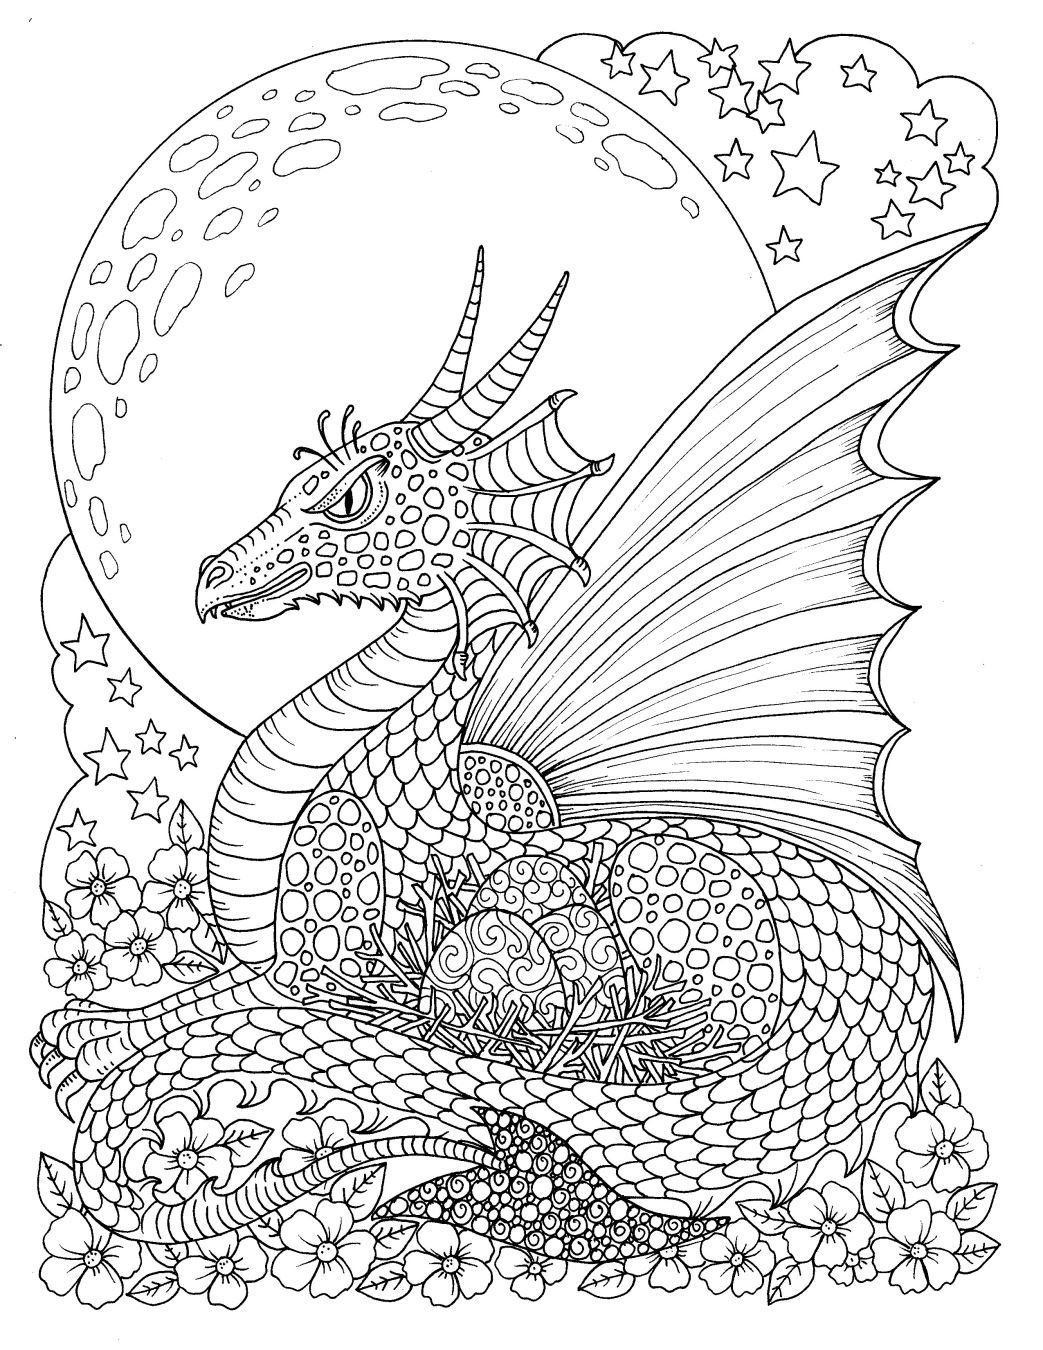 Pin On Dragon Coloring Pages